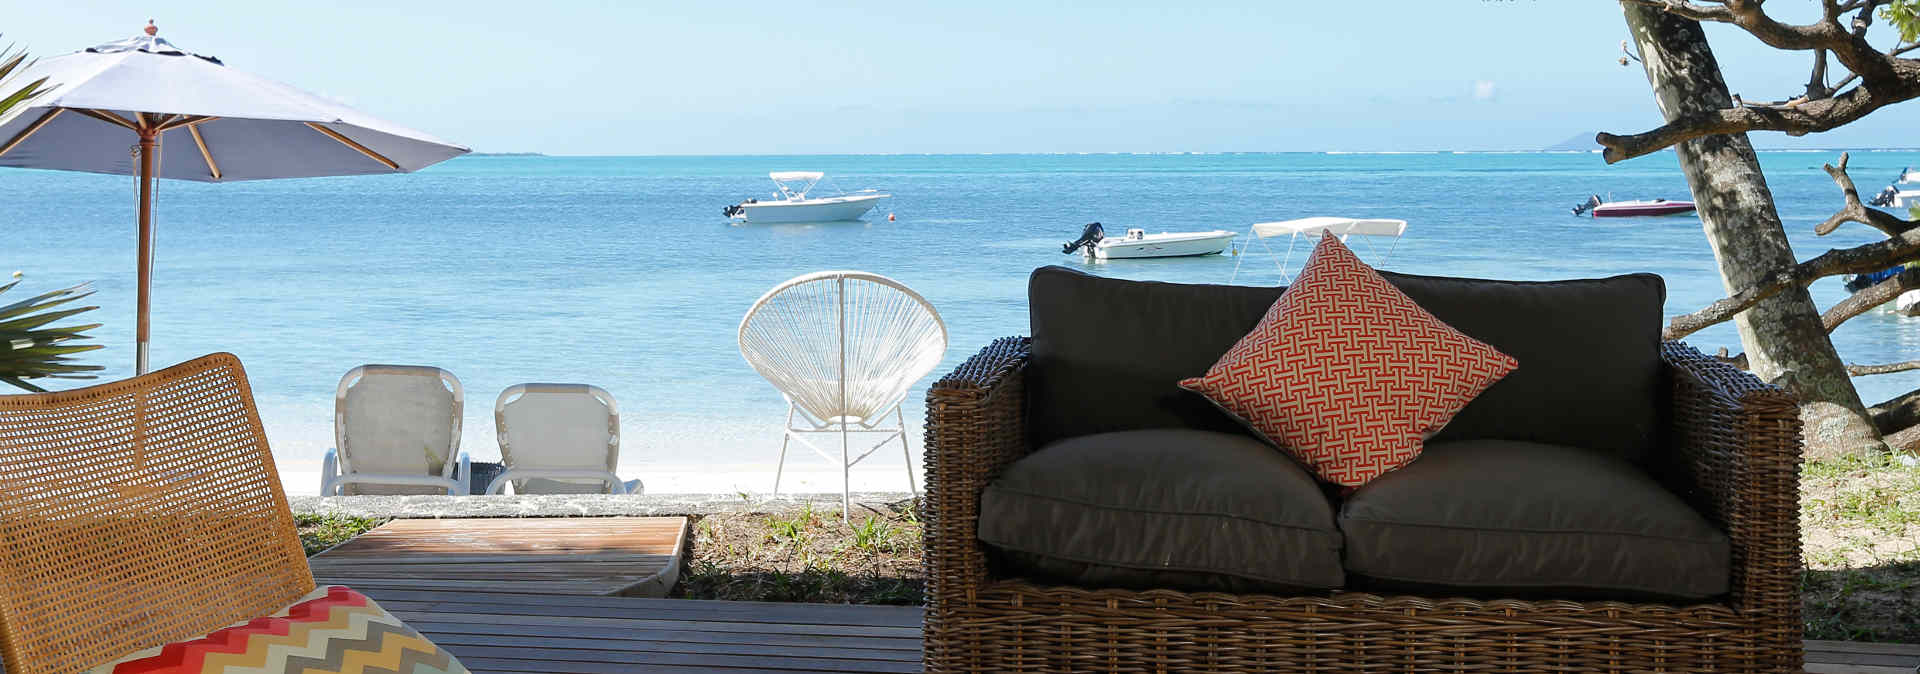 Holiday accommodation in Mauritius